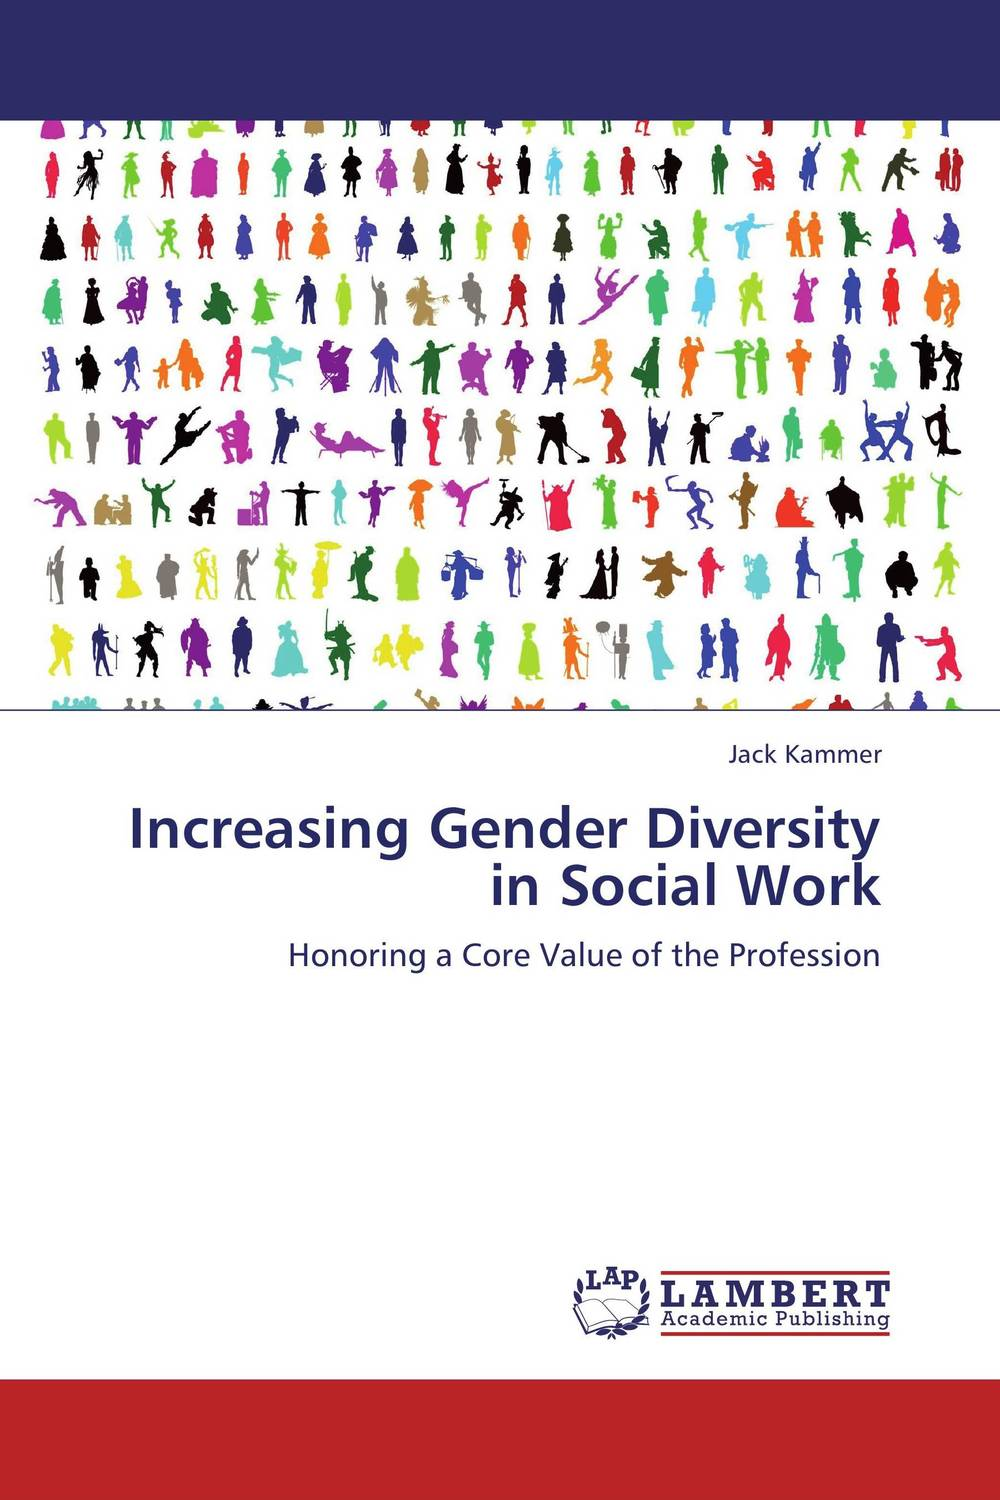 Increasing Gender Diversity in Social Work